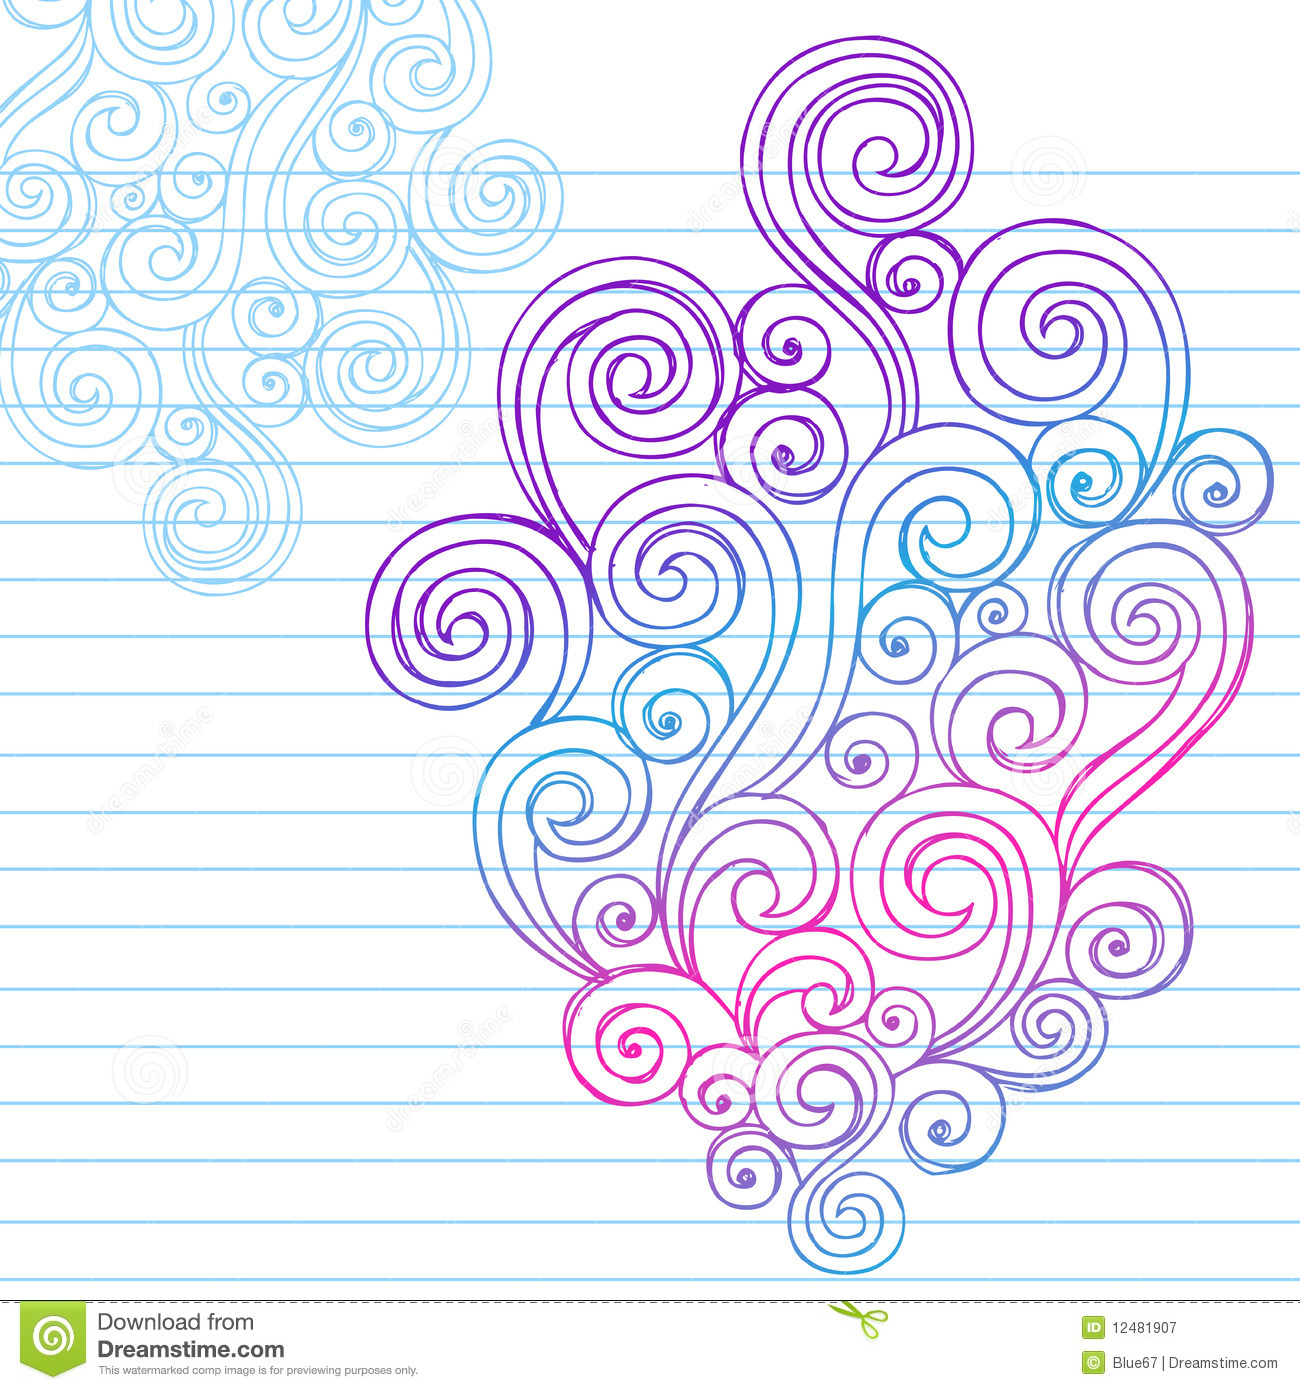 Hand Drawn Abstract Sketchy Swirl Doodles Vector Illustration Design